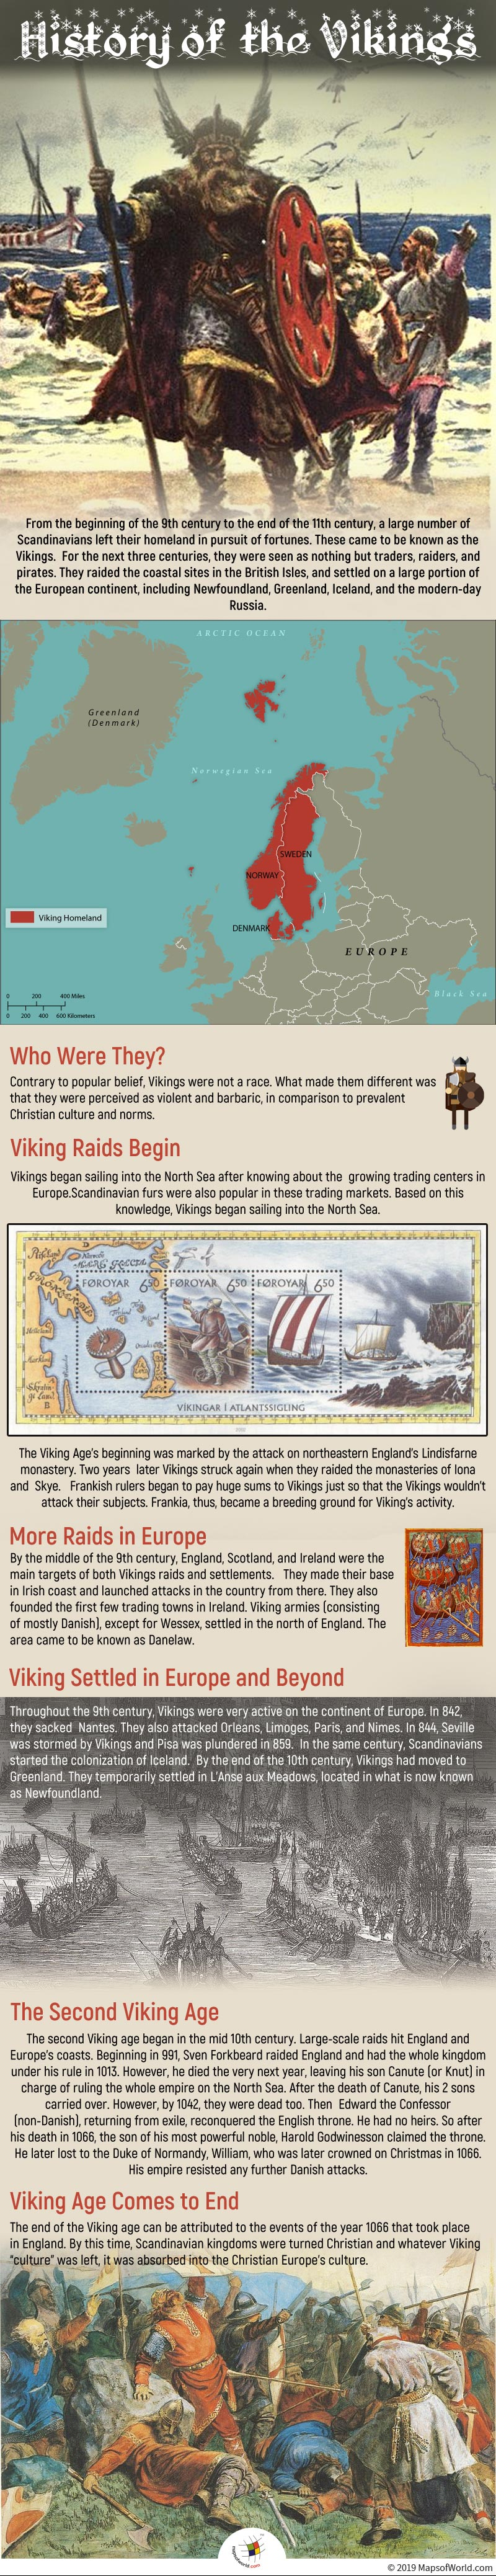 Infographic Showing History of The Vikings